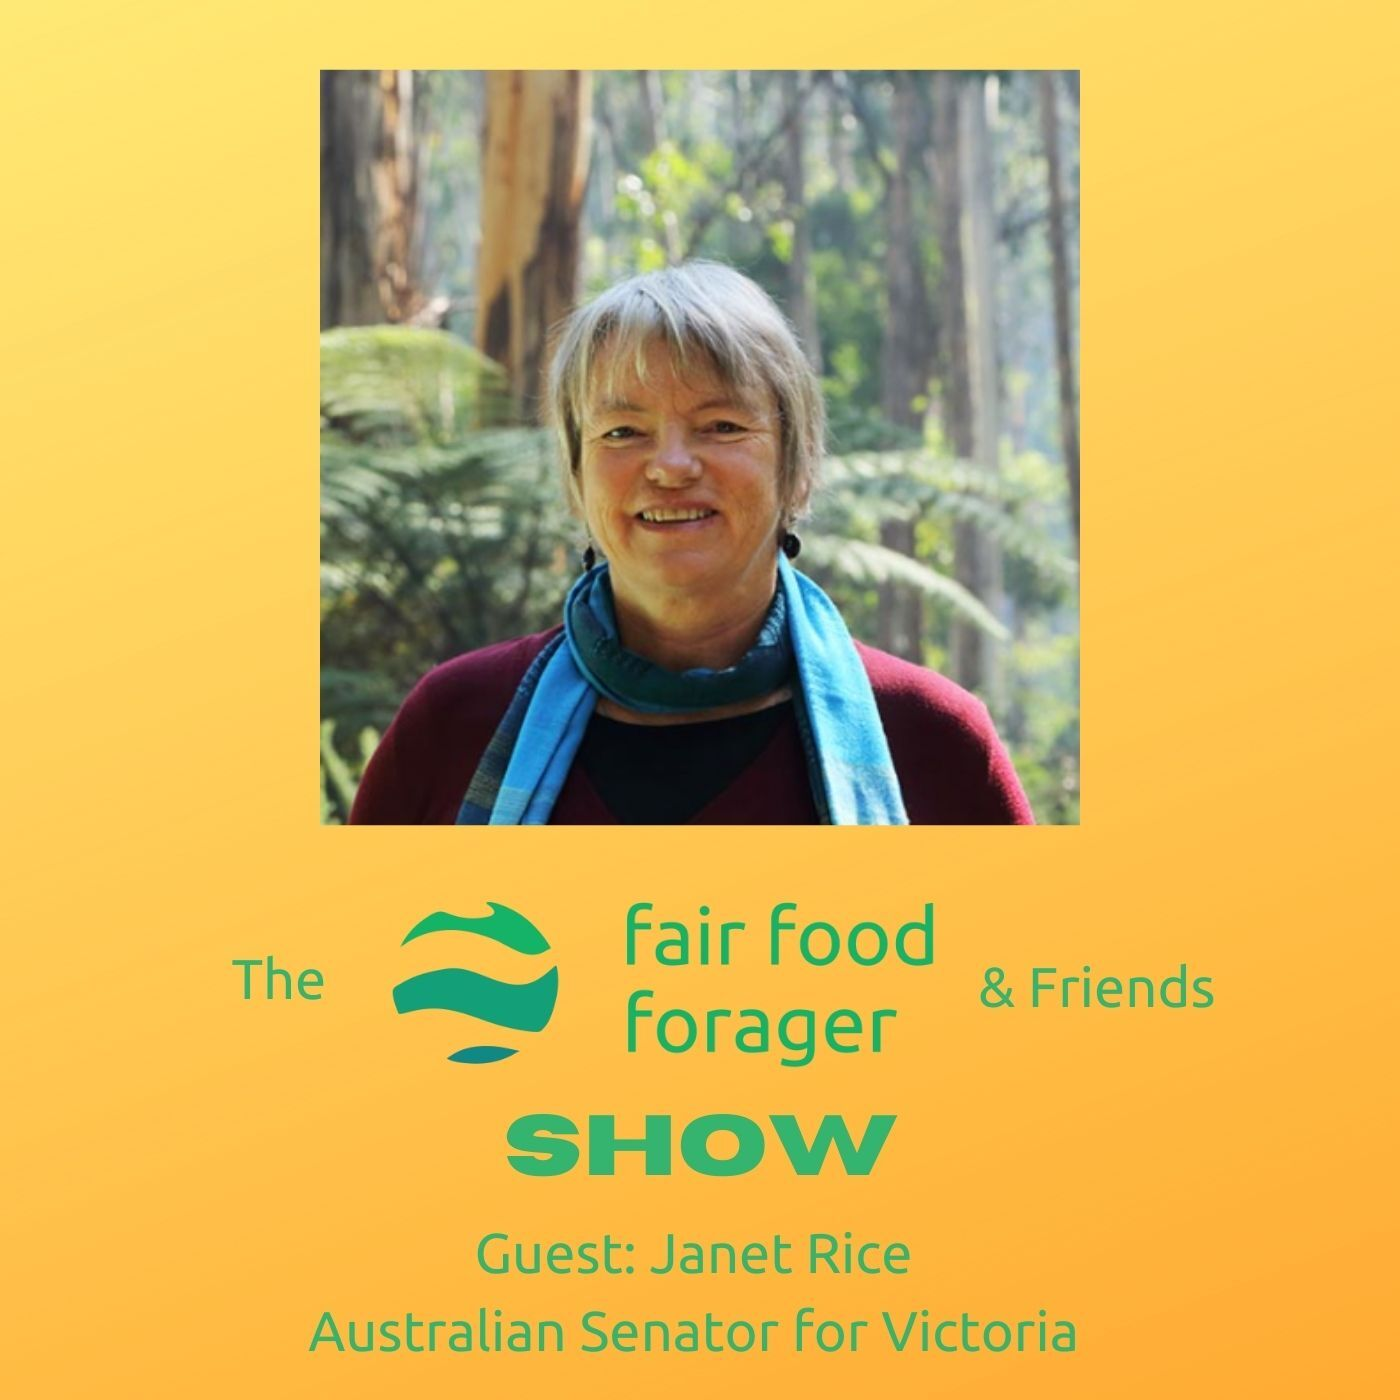 #20 Senator Janet Rice - The Australian Greens, climate change, cycling, nature and grief.